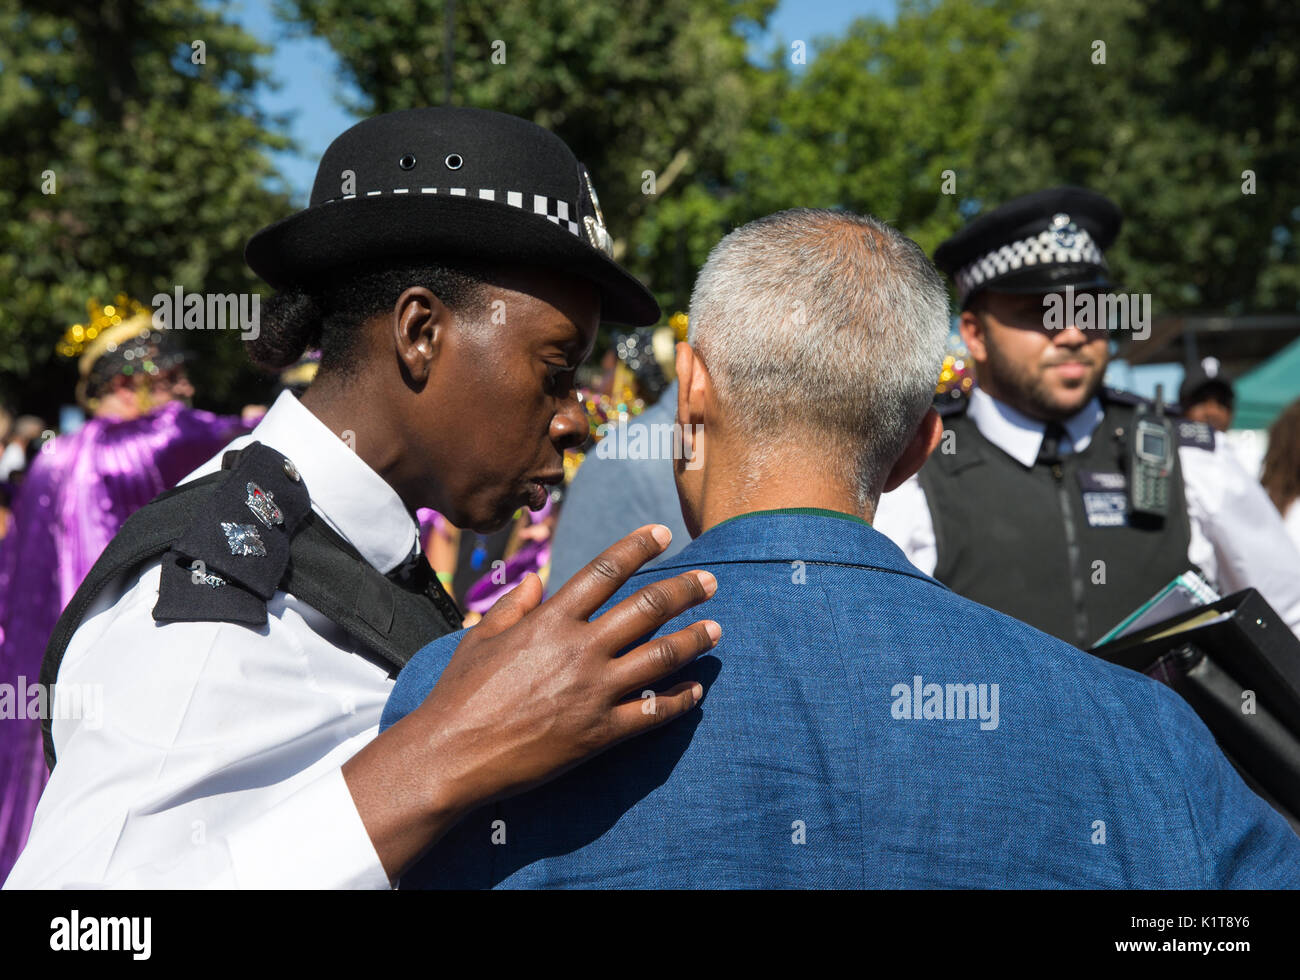 A policewoman has a word with Mayor of London, Sadiq Khan, at the Notting Hill carnival 2017.He spoke about the Grenfell fire tragedy - Stock Image